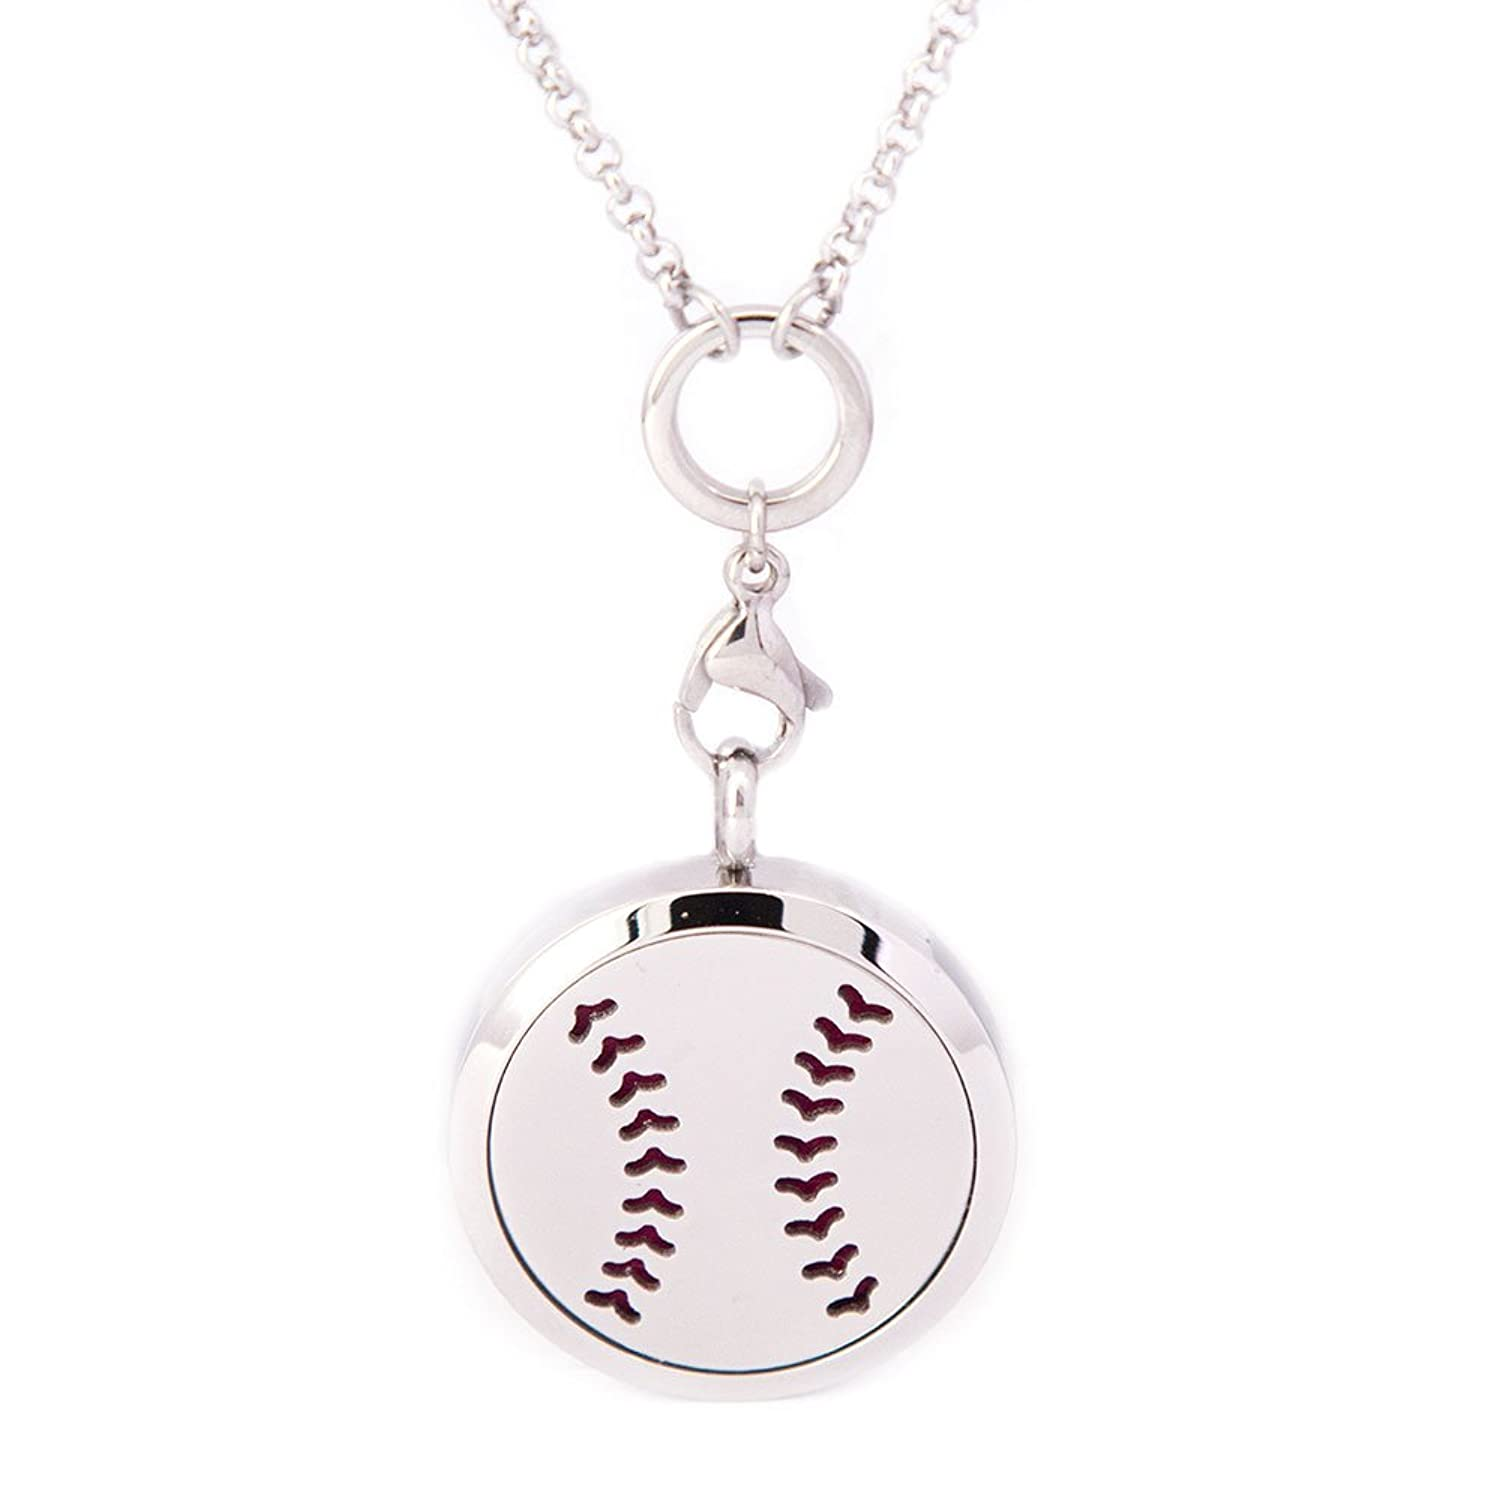 pendant baseball softball charms w on shipping charm com making get wholesale and jewelry handmade buy silver craft pendants aliexpress free for tone diy antique